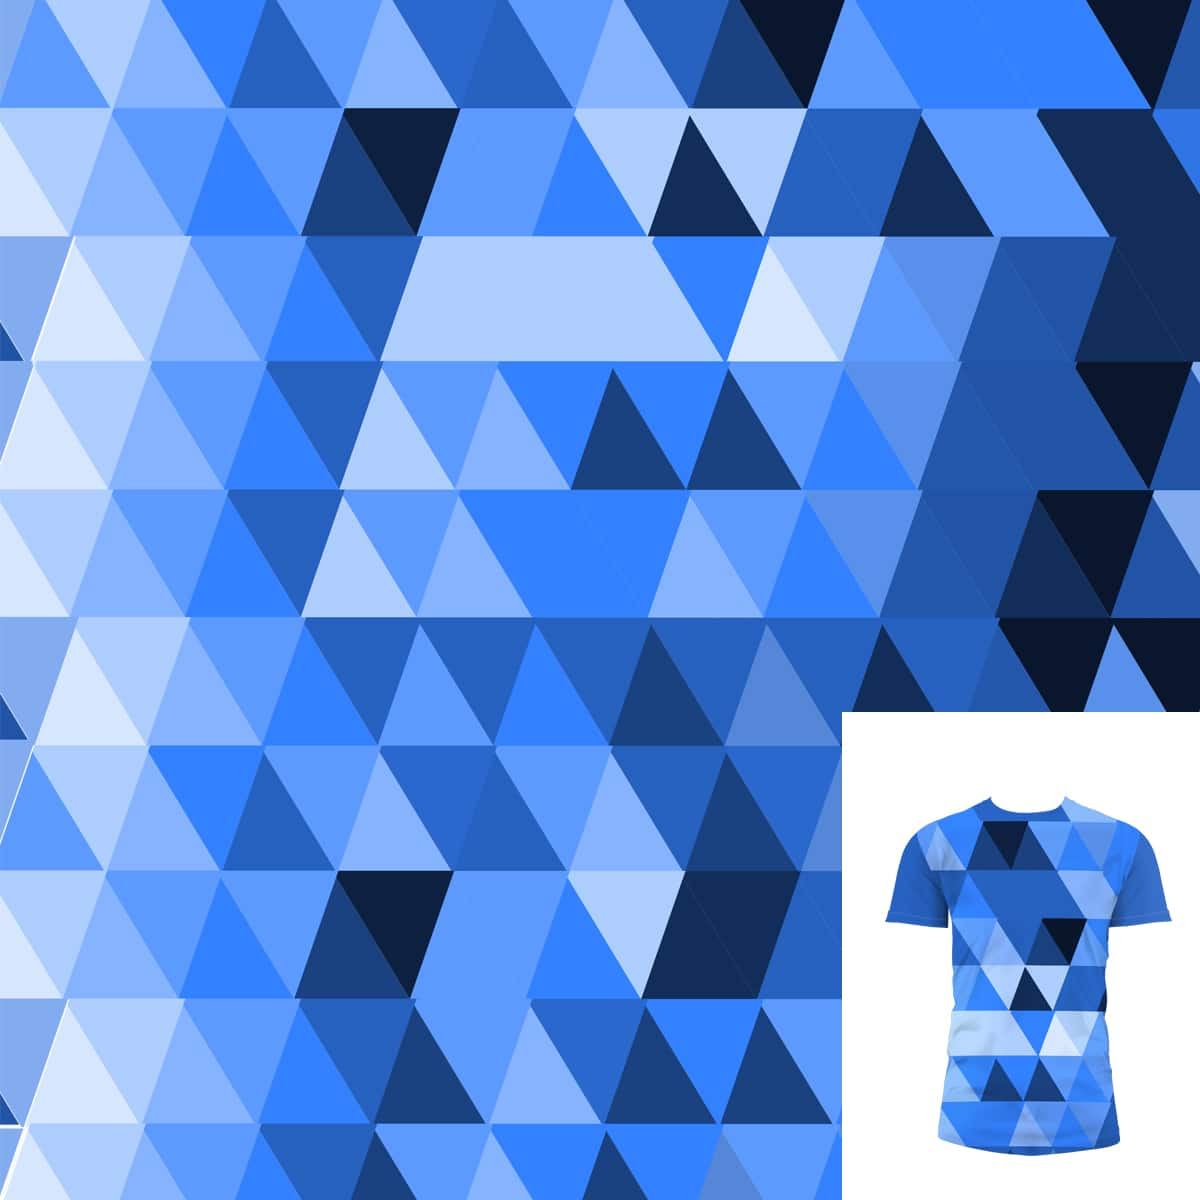 blues by kwesikay on Threadless